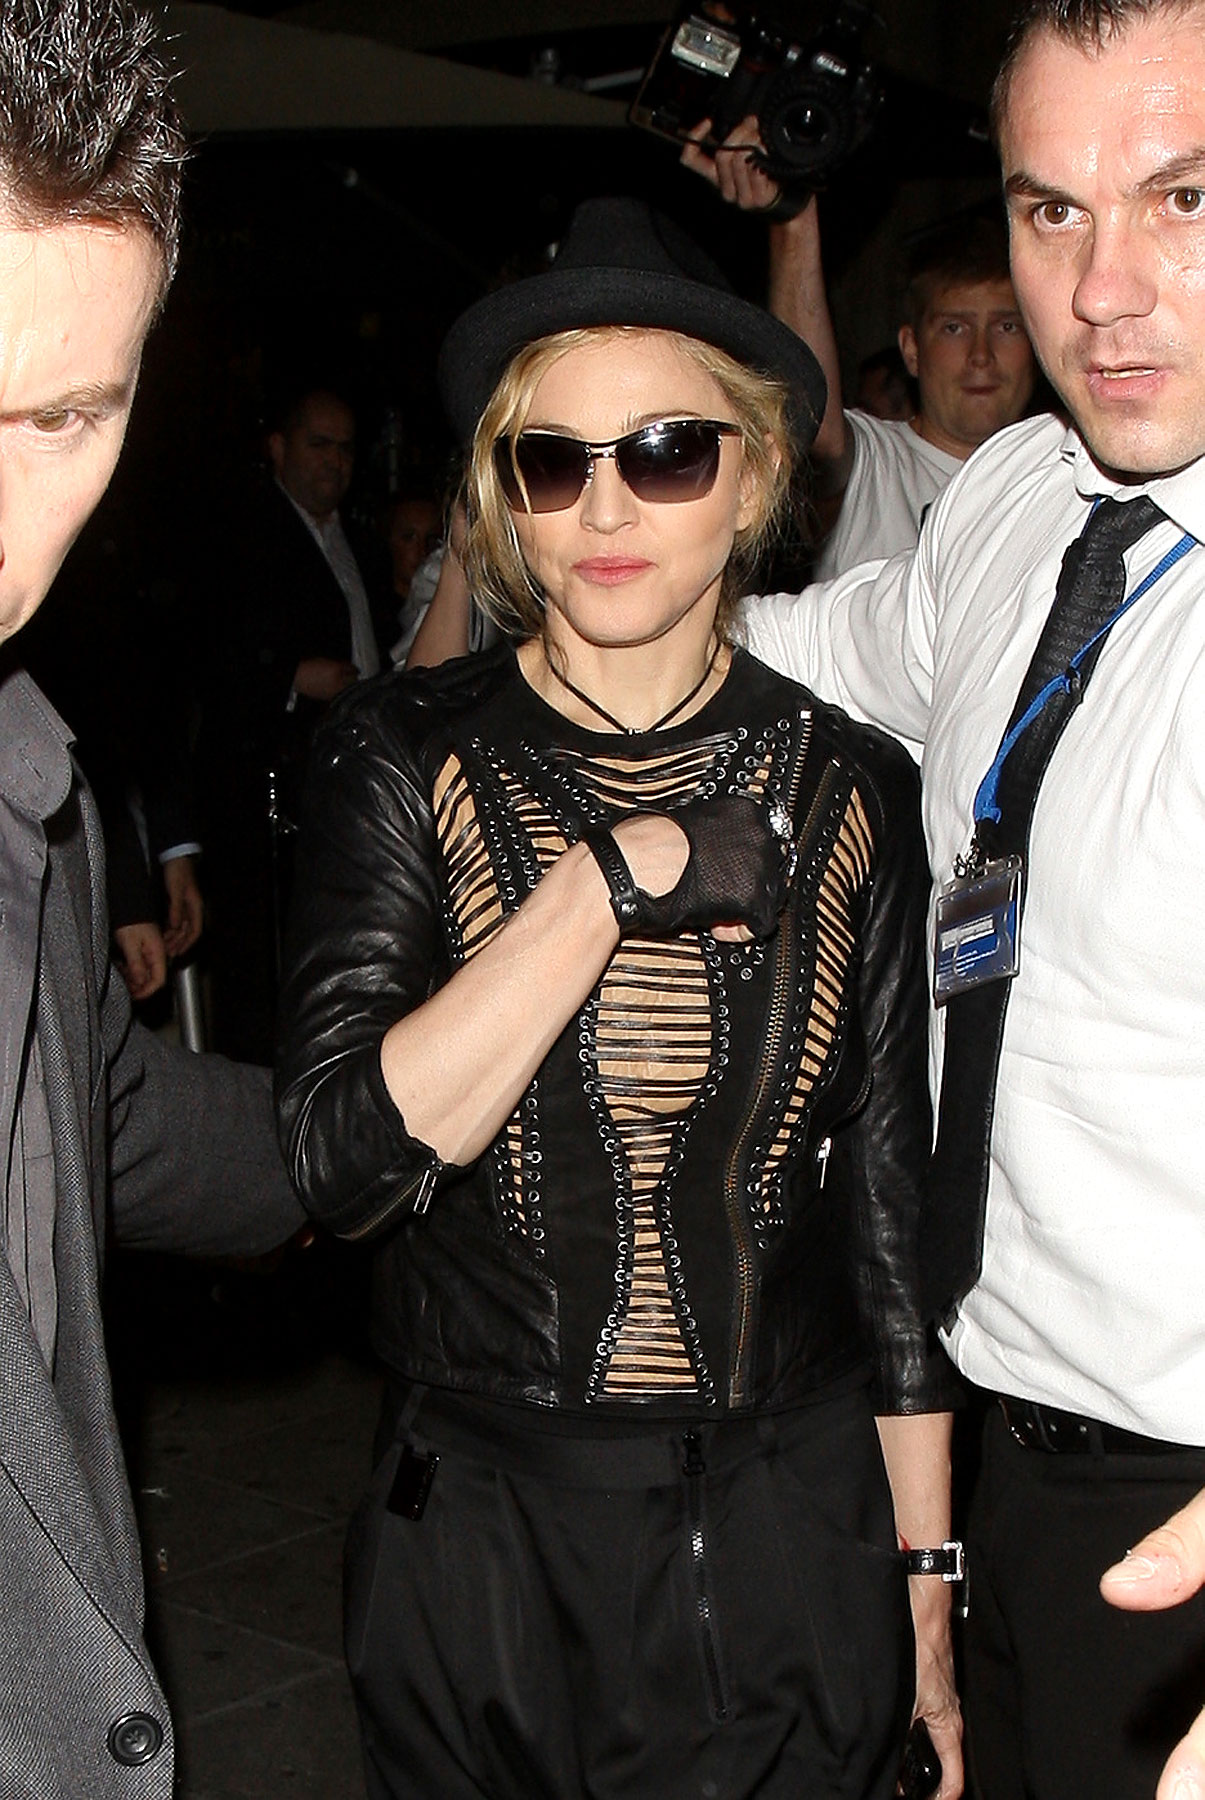 Fashion FAIL: Madonna In Laces And Leather (PHOTOS)